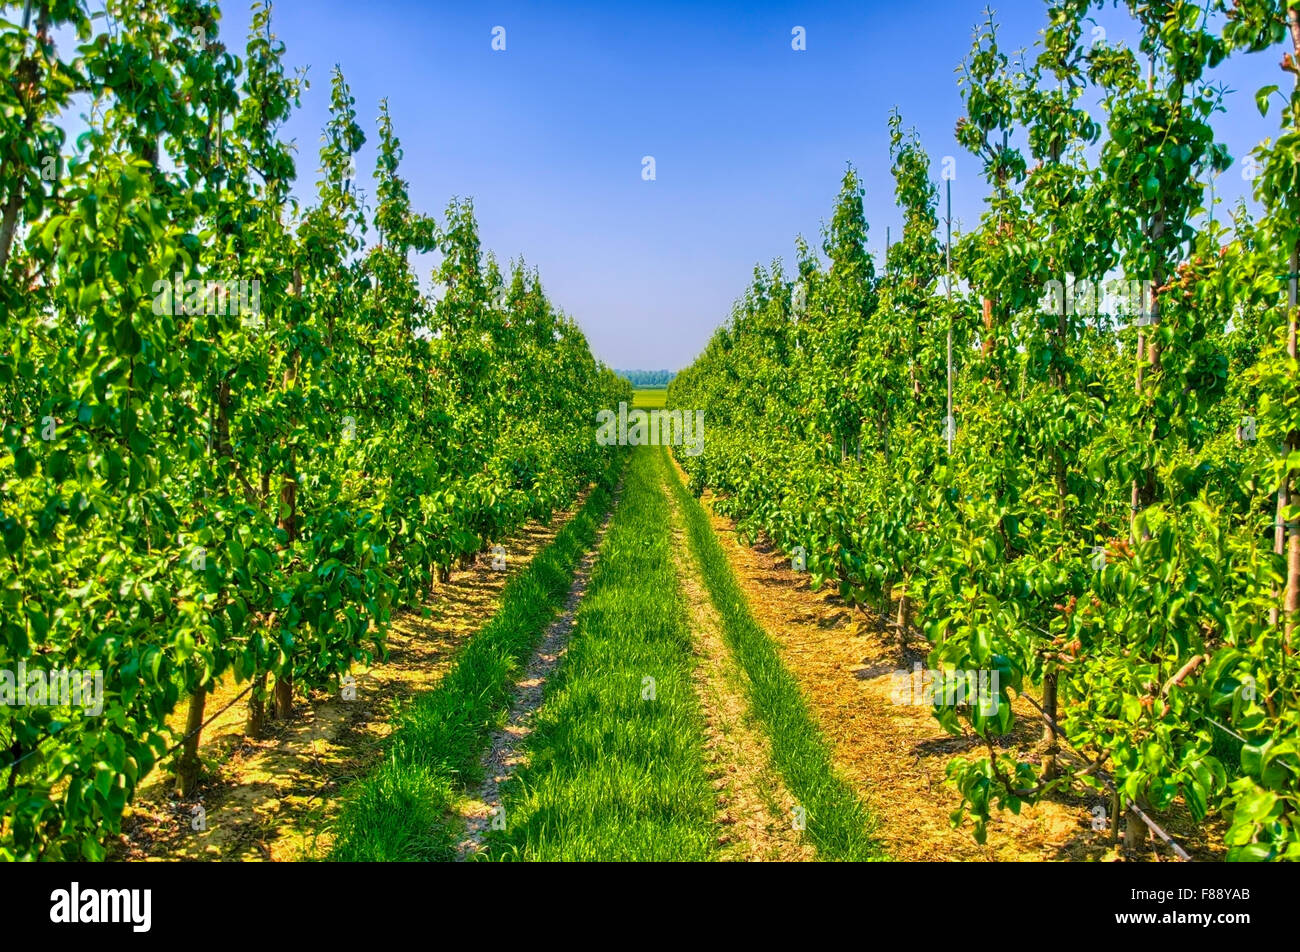 Rows of young apple trees in Belgium countryside, Benelux, HDR Stock Photo